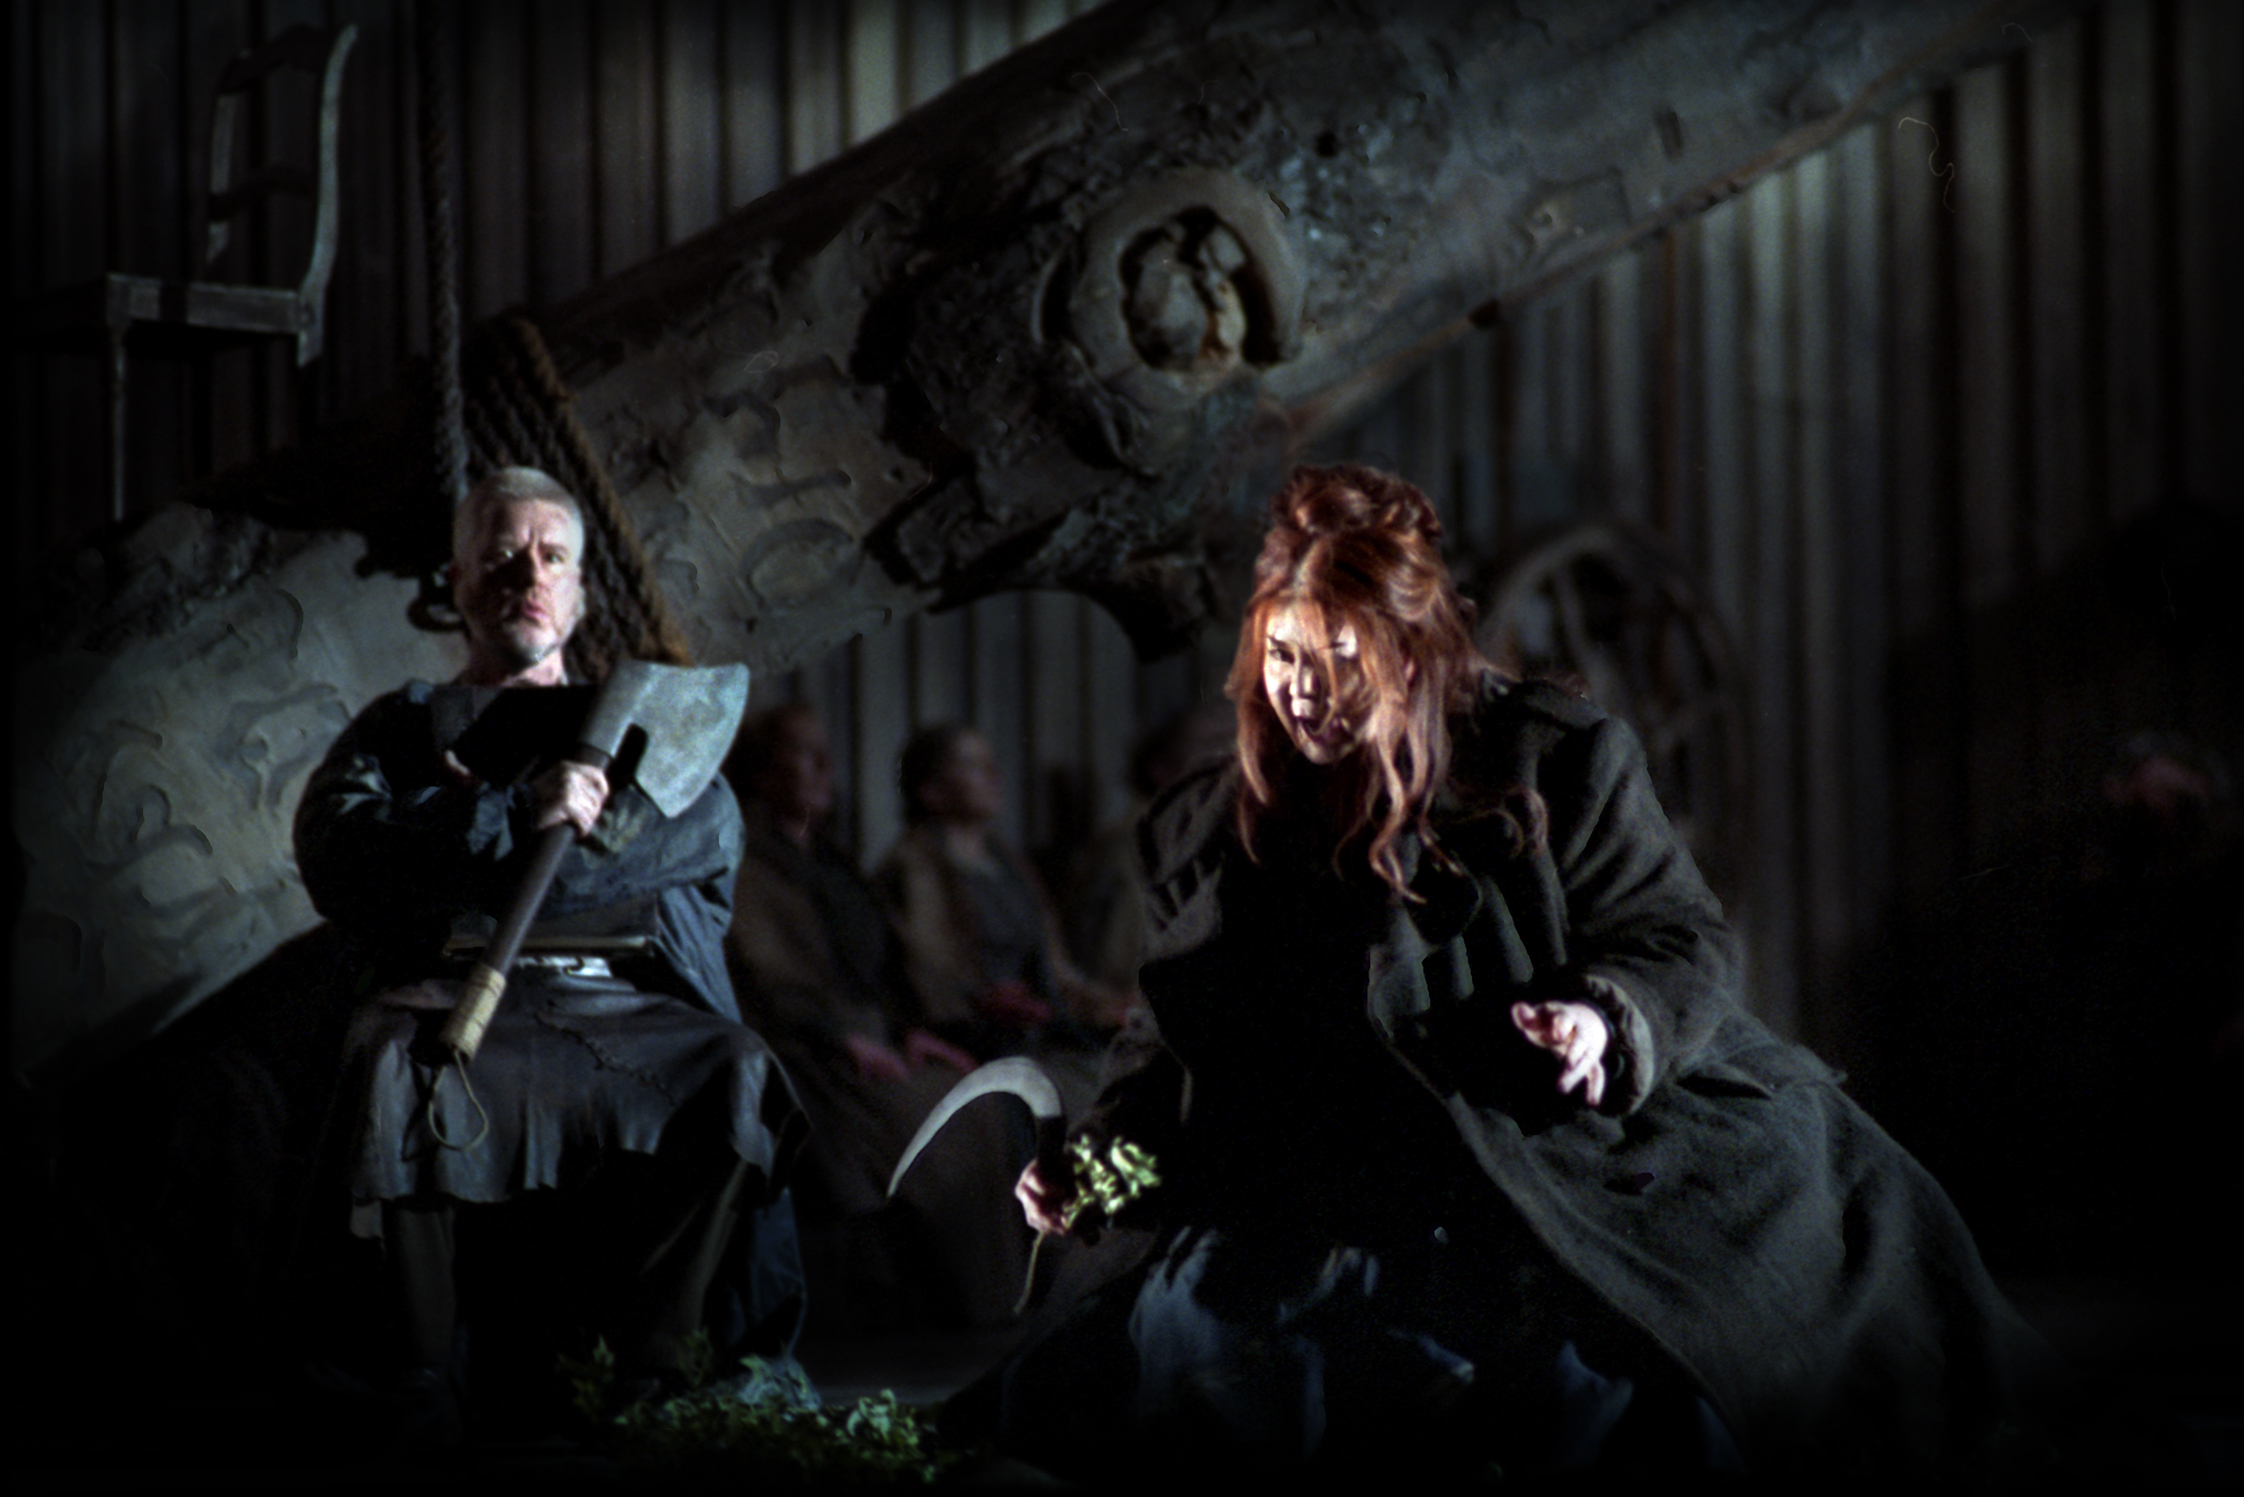 James Cresswell and Marjorie Owens in Norma